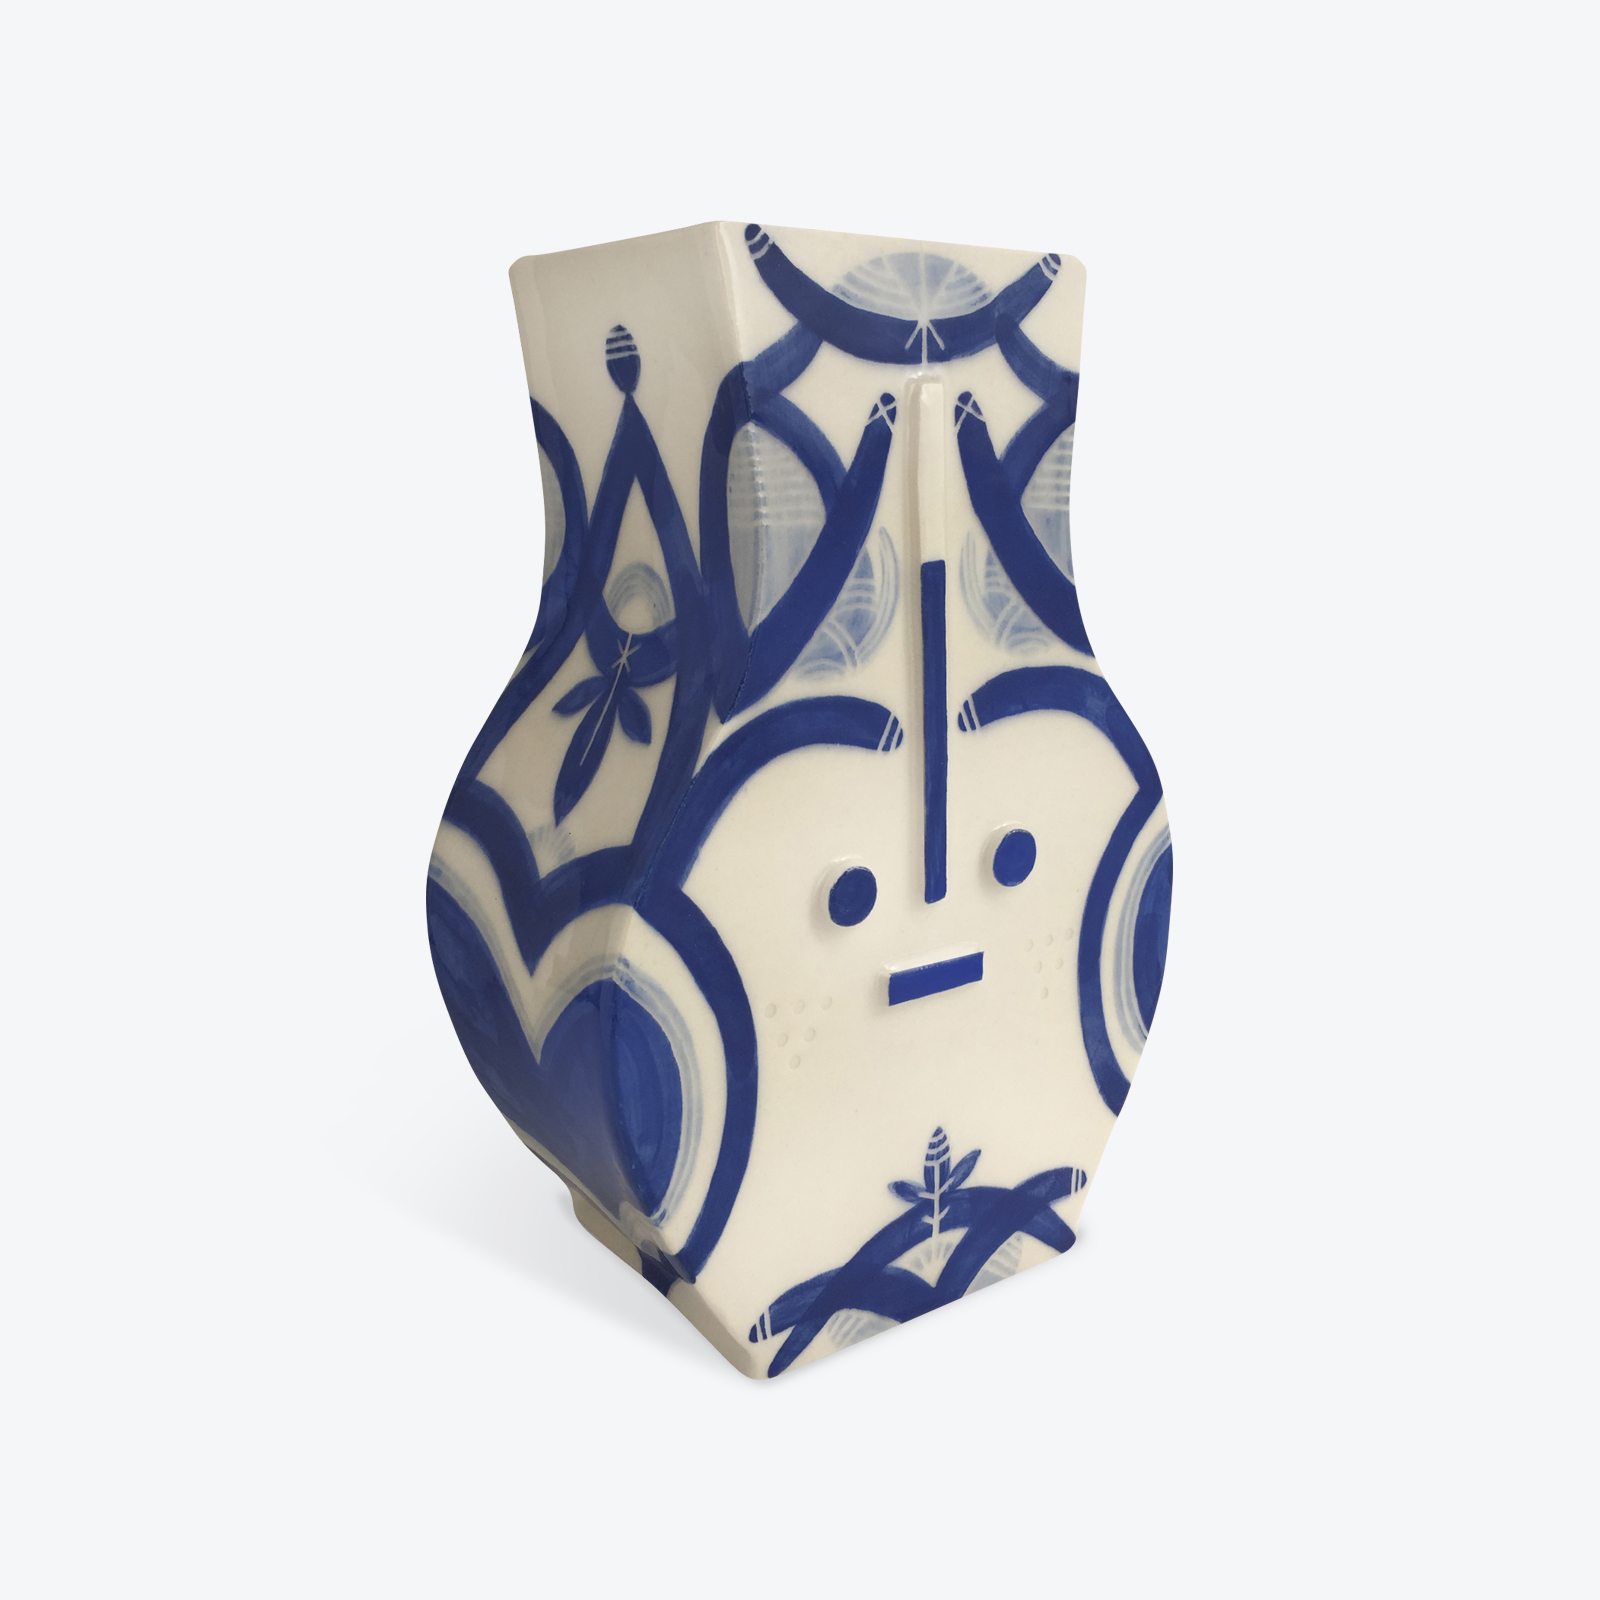 Blue Destiny Blue Ceramic Vase By Louise Kyriakou 02